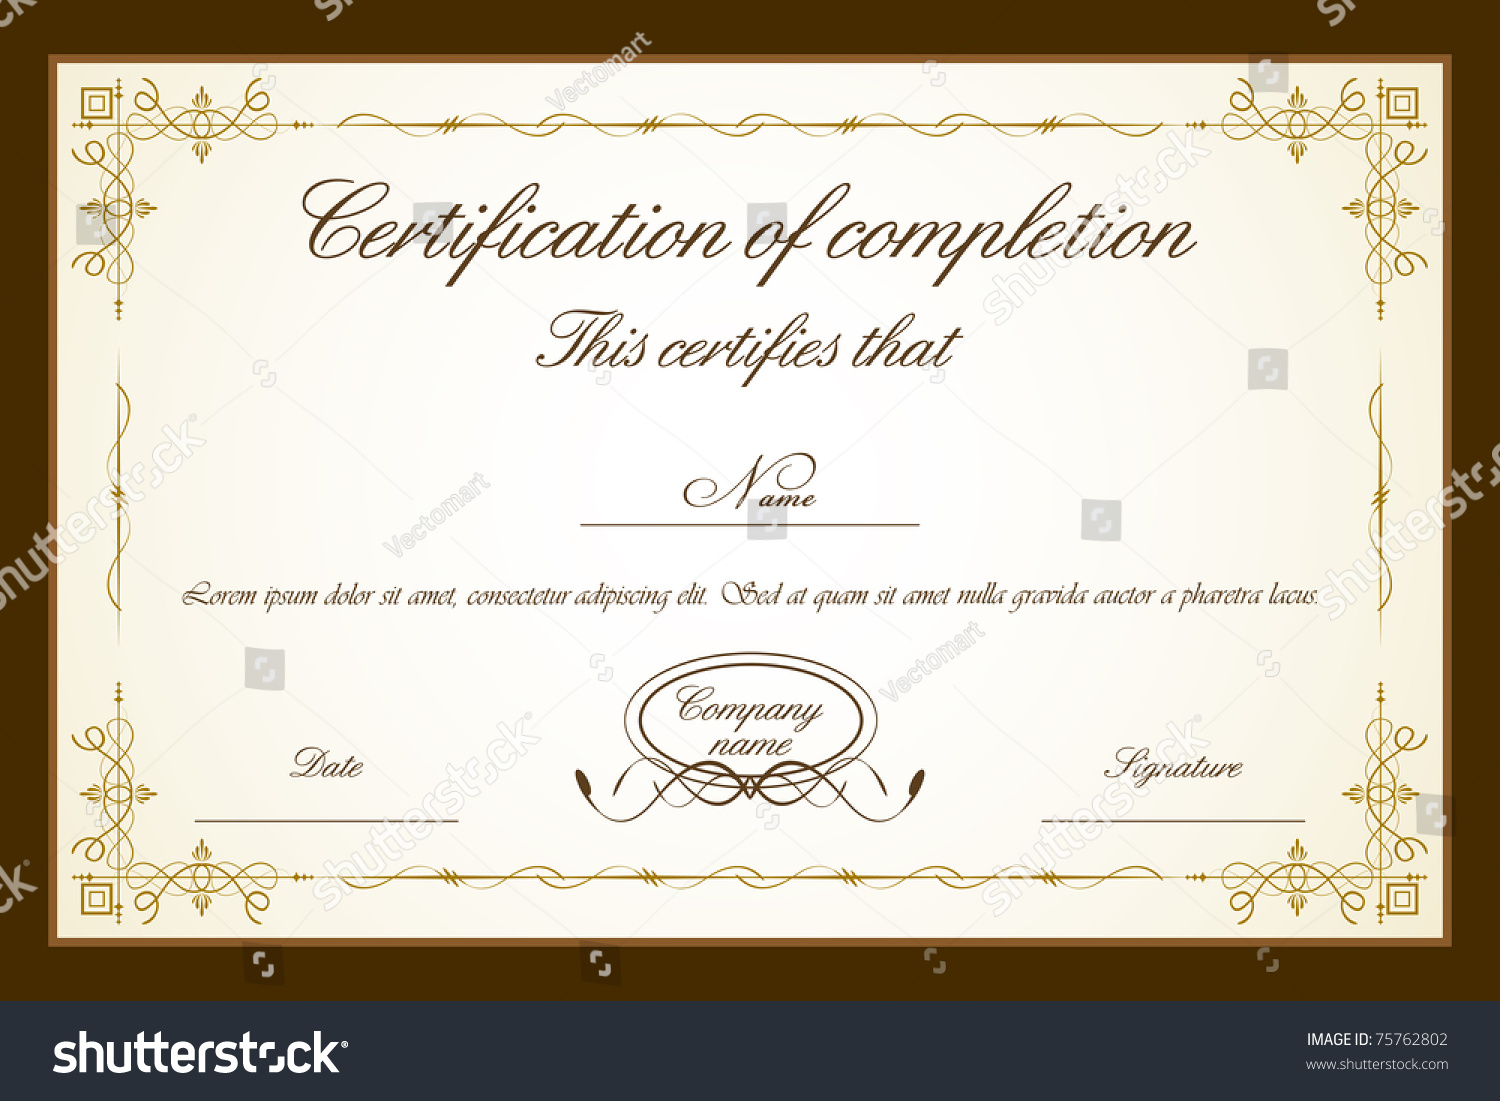 Illustration Certificate Template Floral Frame Stock Vector Royalty